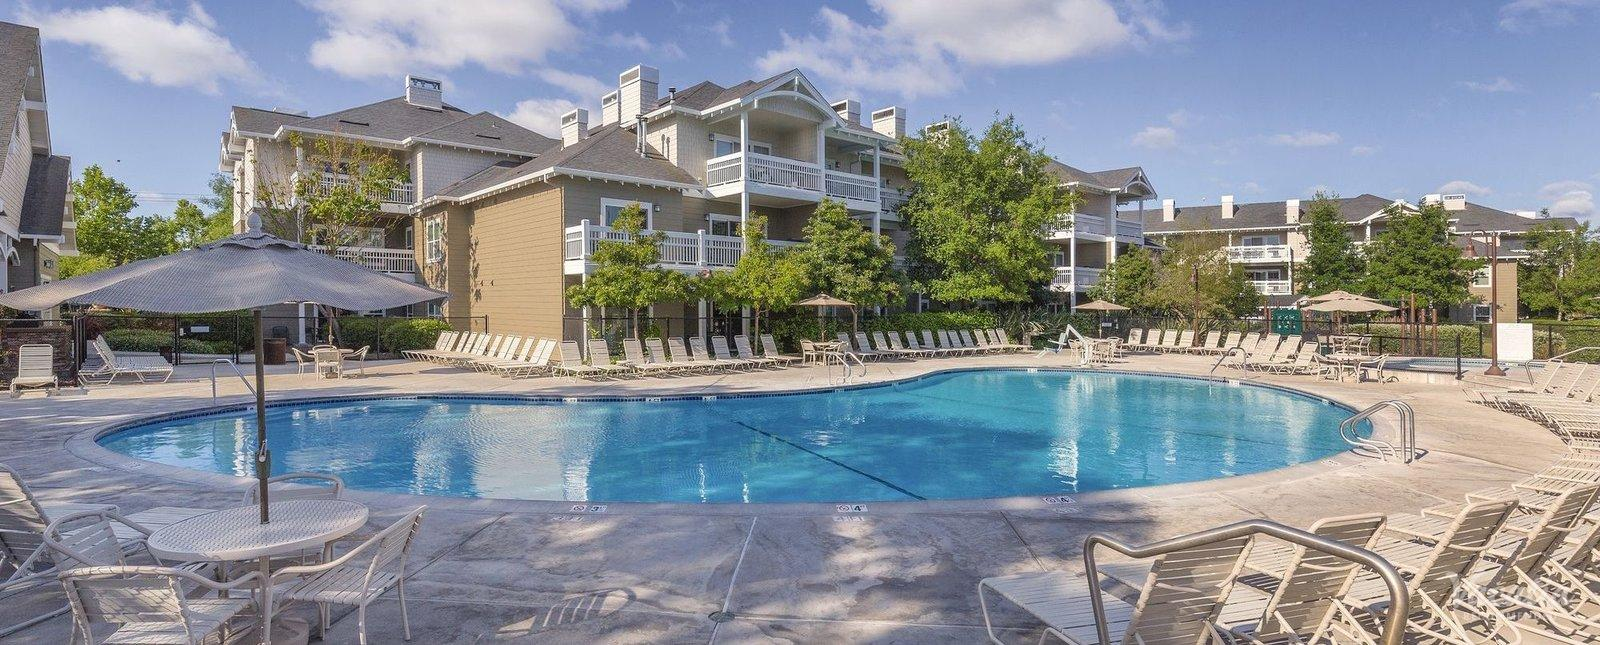 WorldMark Windsor Resort Pools